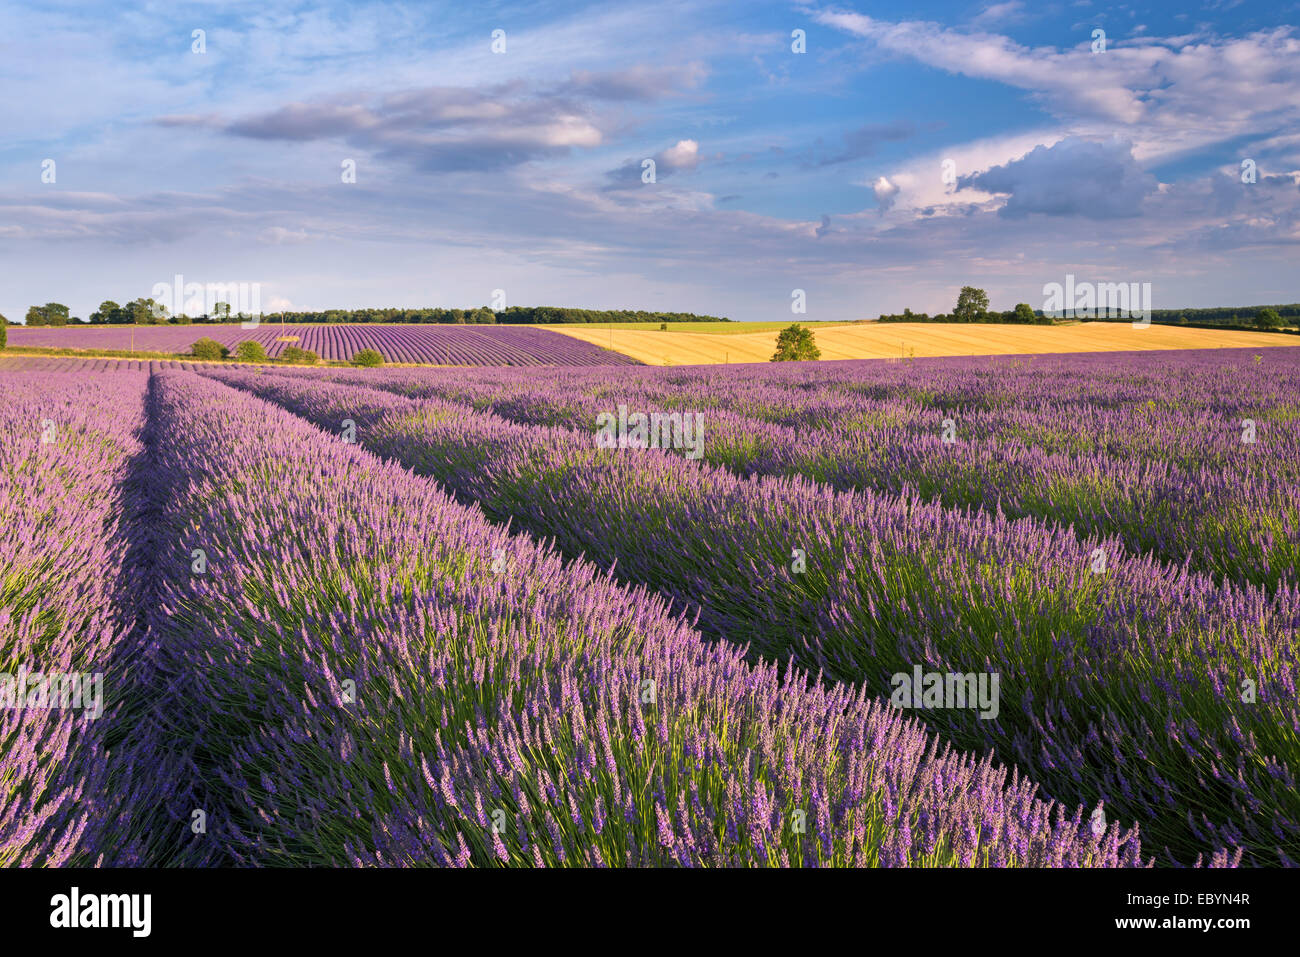 Lavender field in full bloom, Snowshill, Cotswolds, England. Summer (July) 2014. - Stock Image